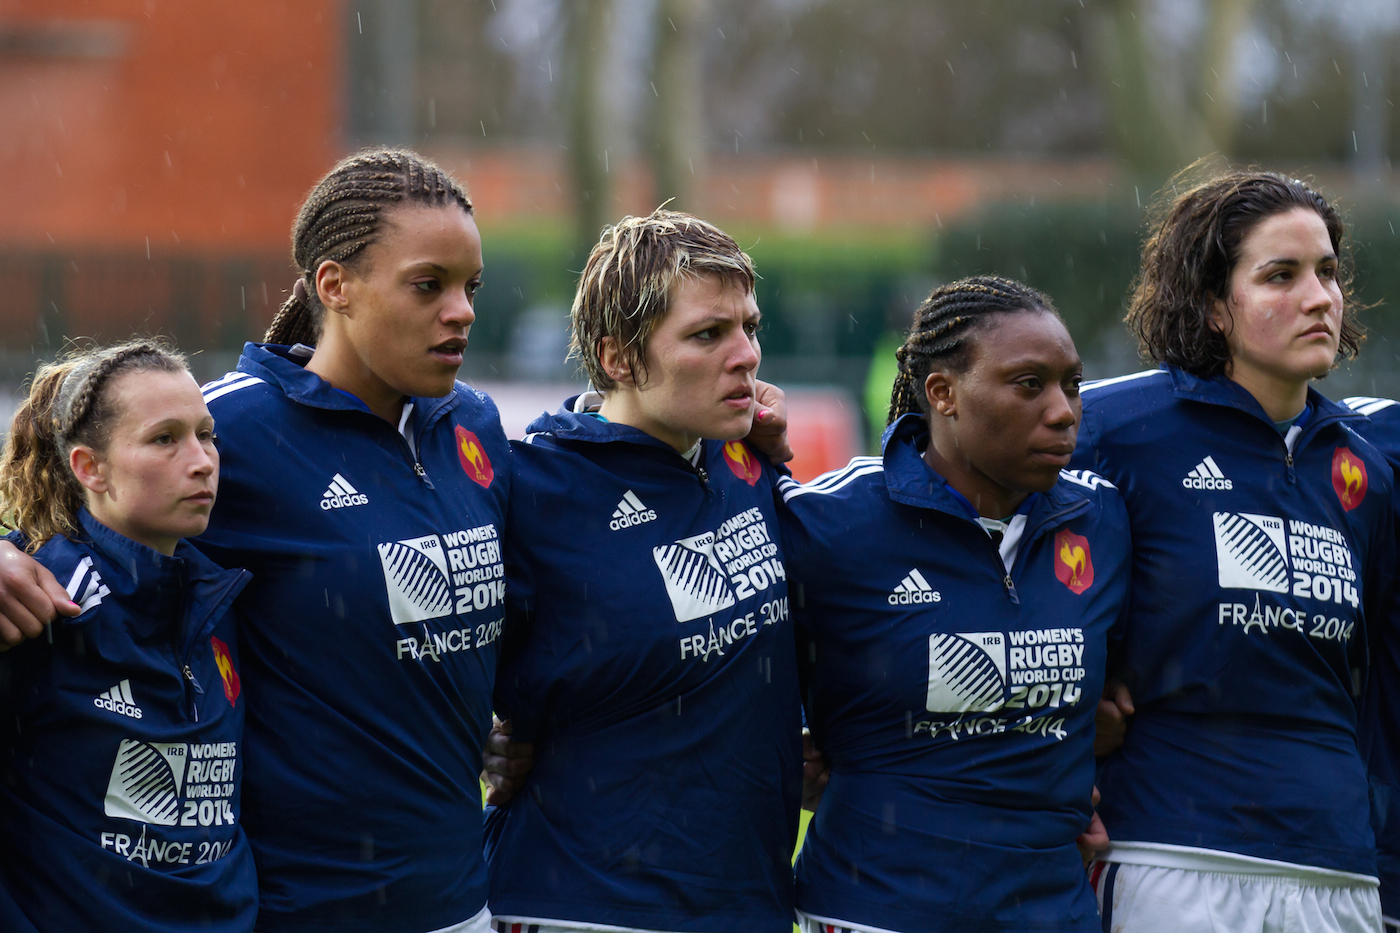 Match Rugby France Afrique du Sud en direct live streaming